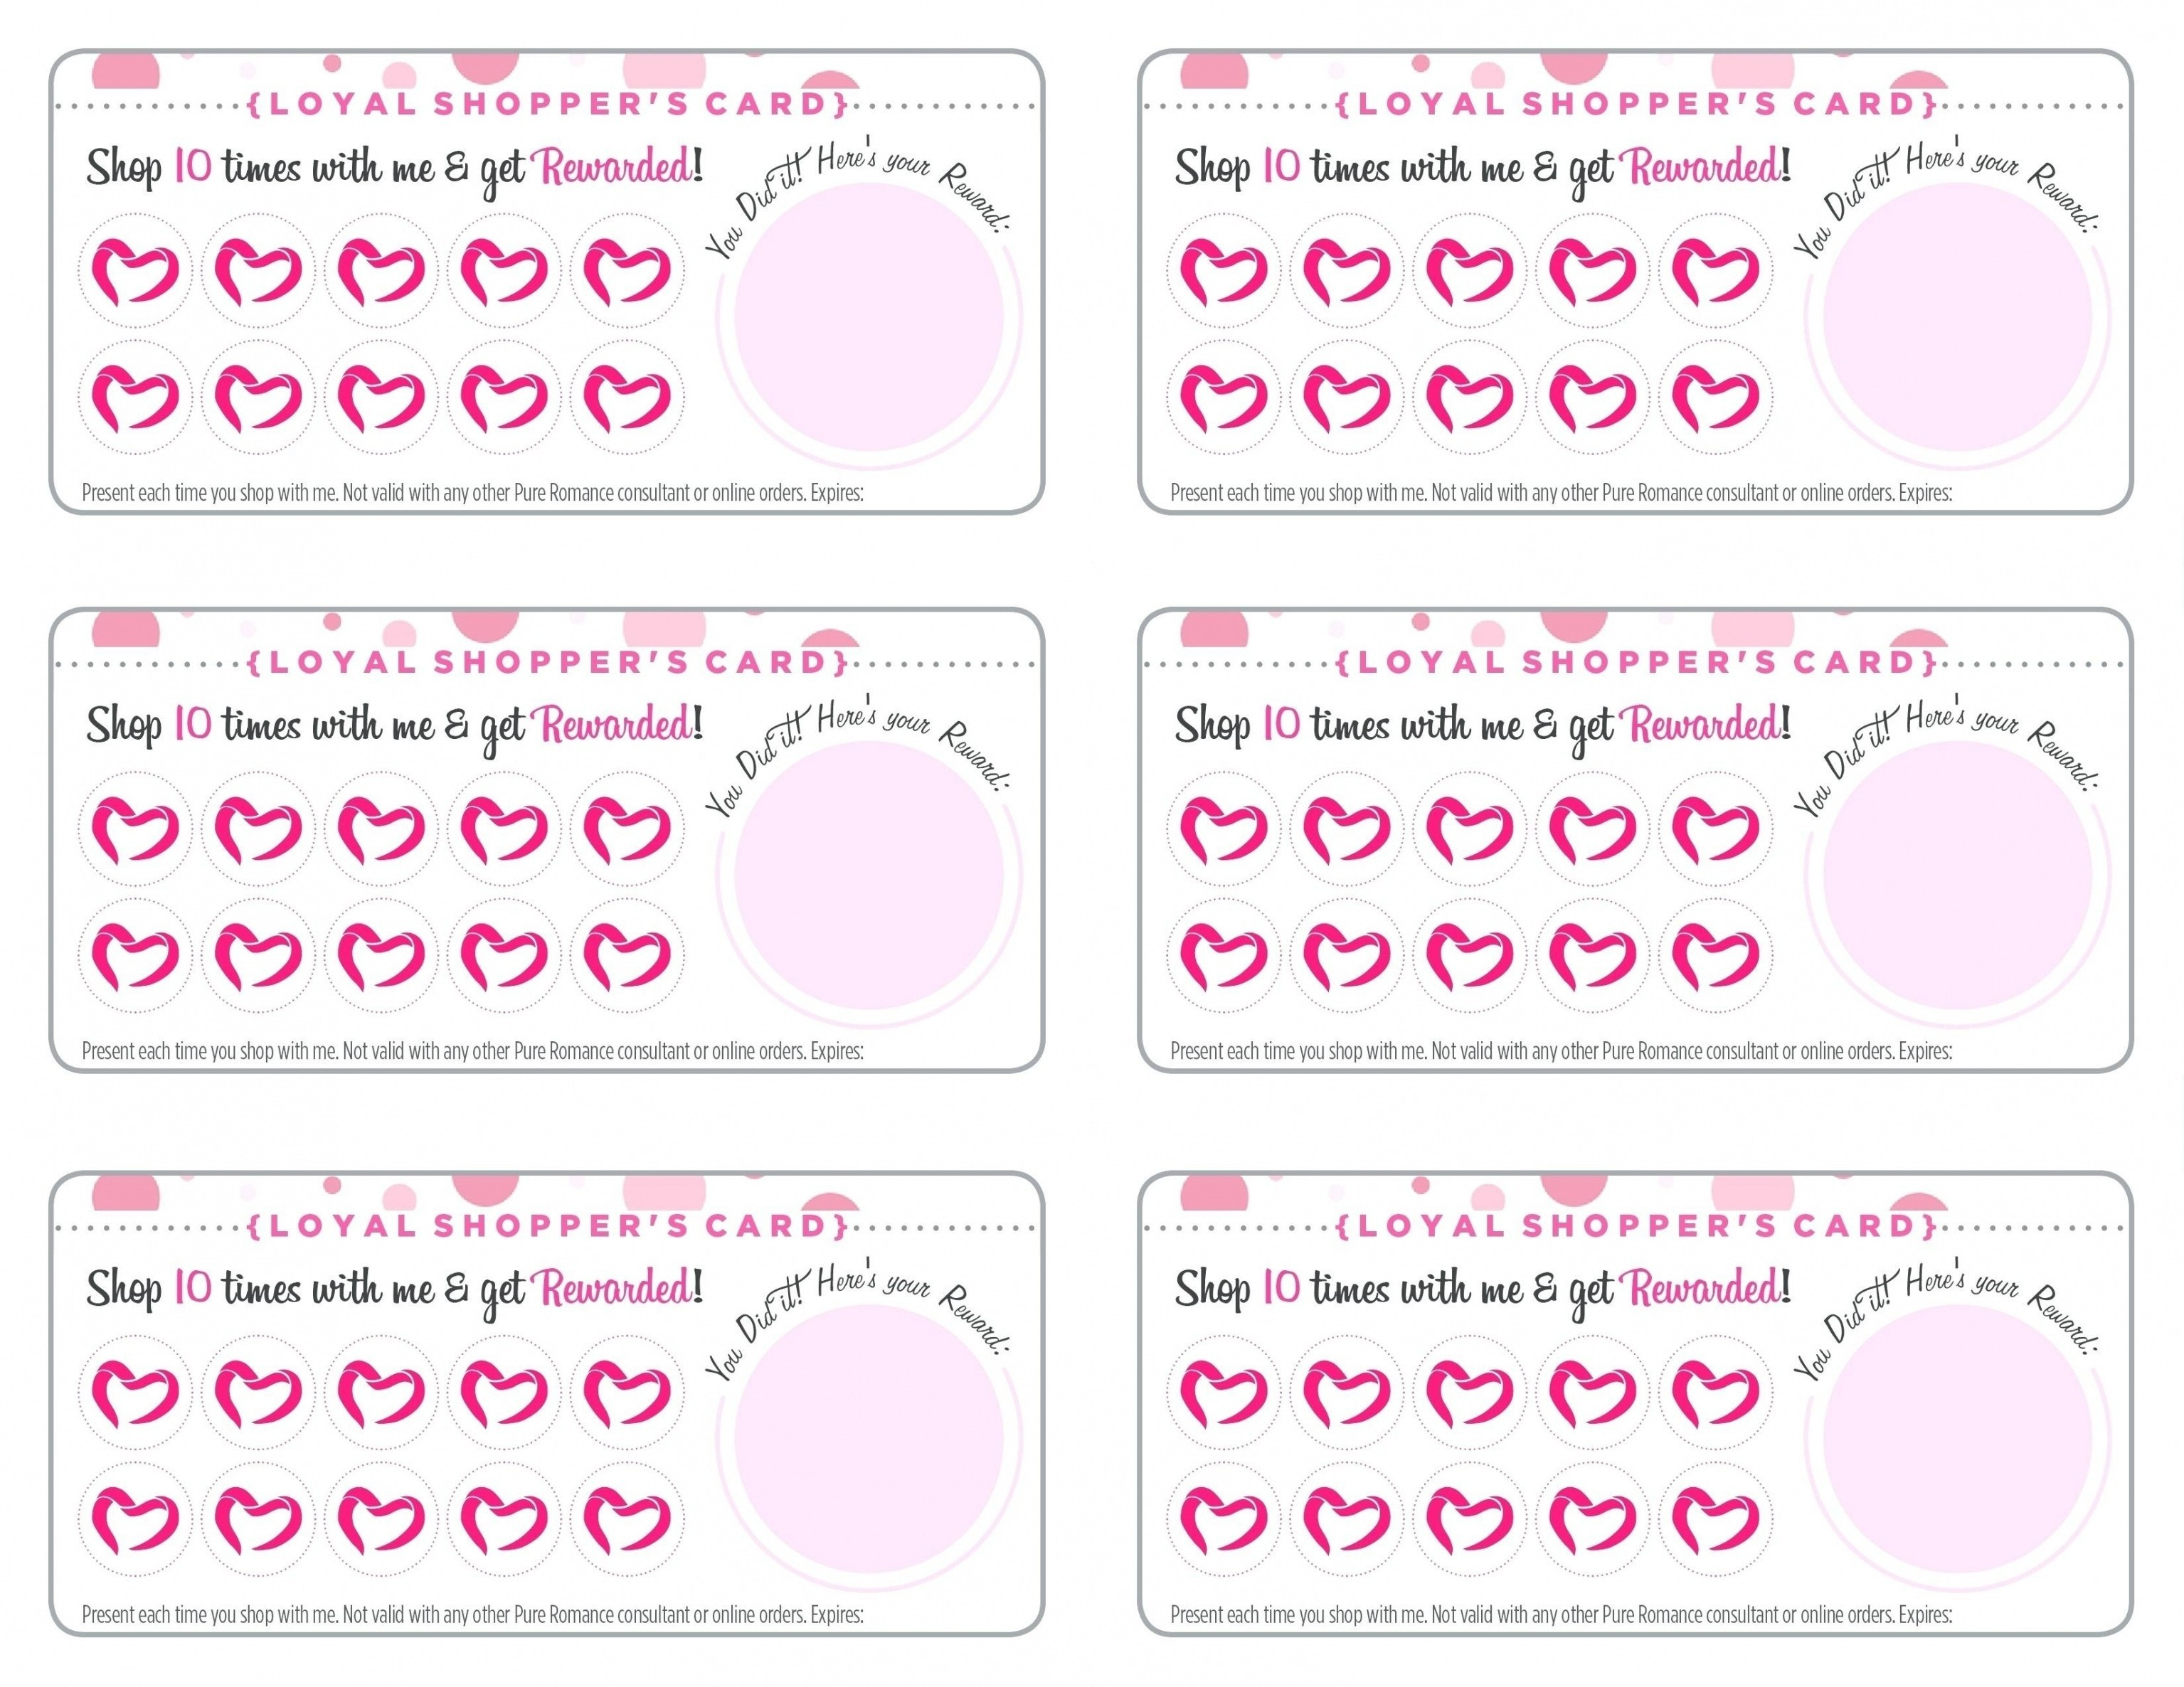 Free Printable Punch Card Template Unique Loyalty Cards In Drabble - Free Printable Loyalty Card Template